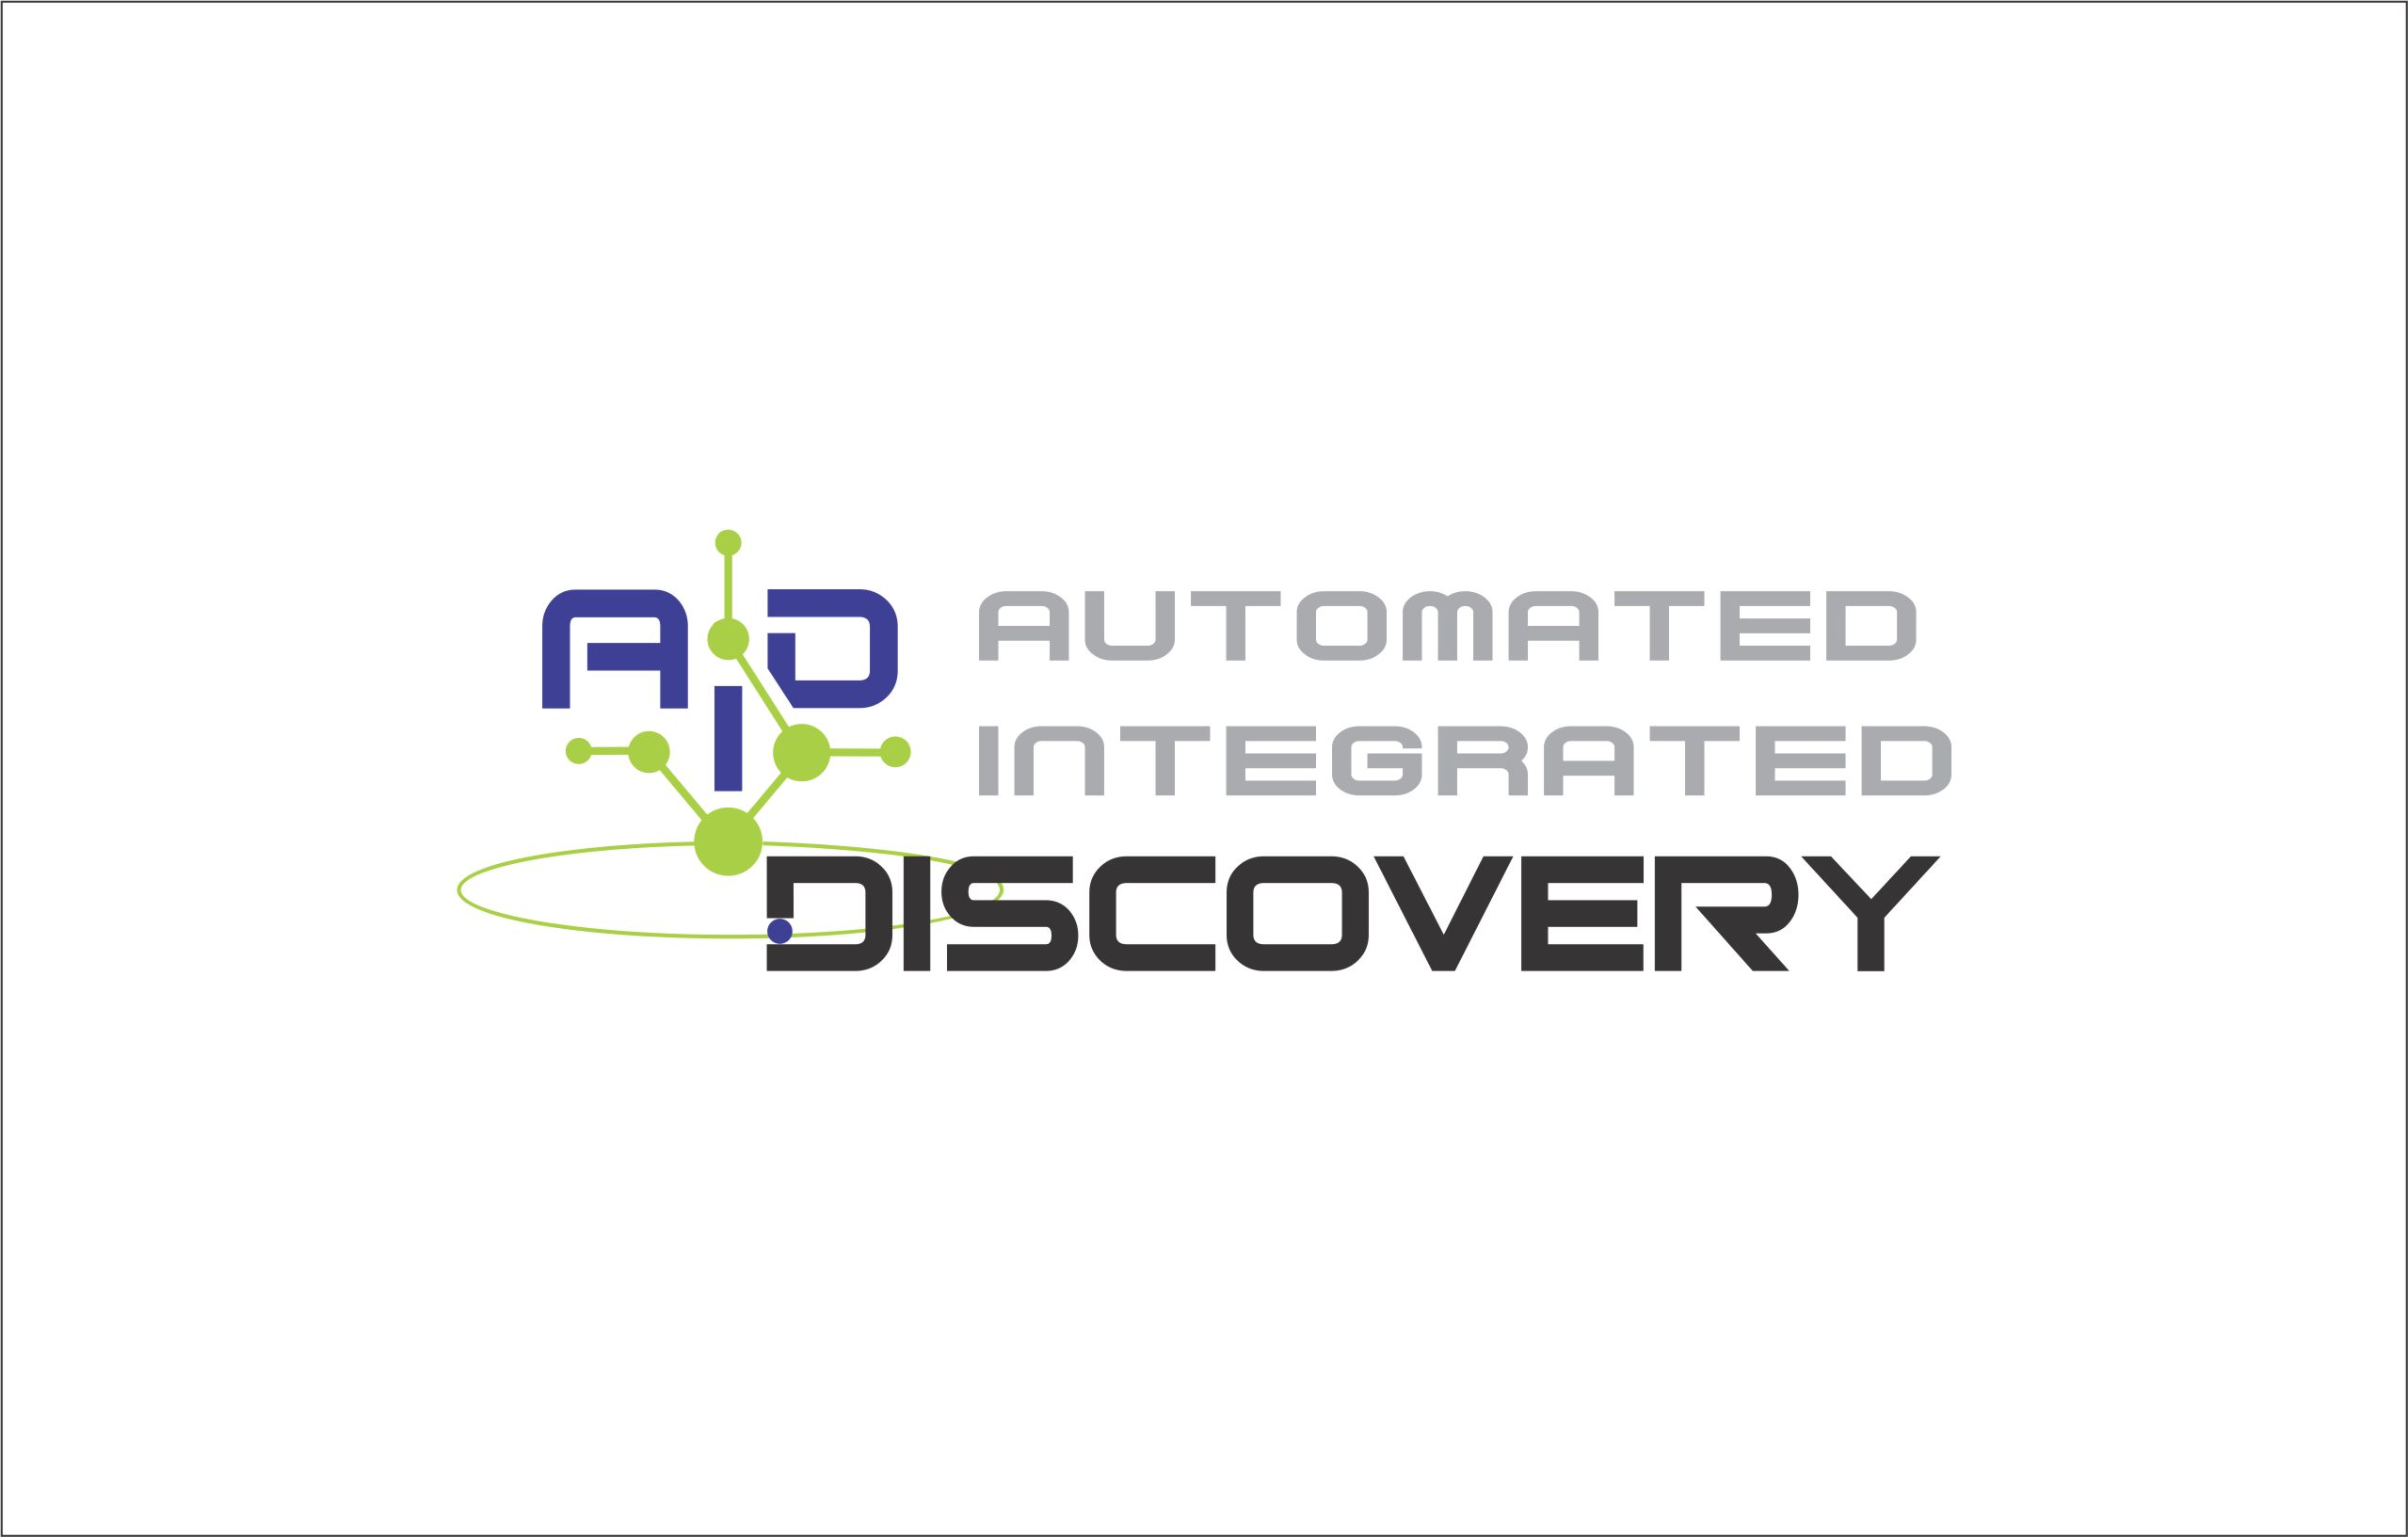 Logo Design by Nikola Kapunac - Entry No. 73 in the Logo Design Contest Automated Integrated Discovery  Logo Design.